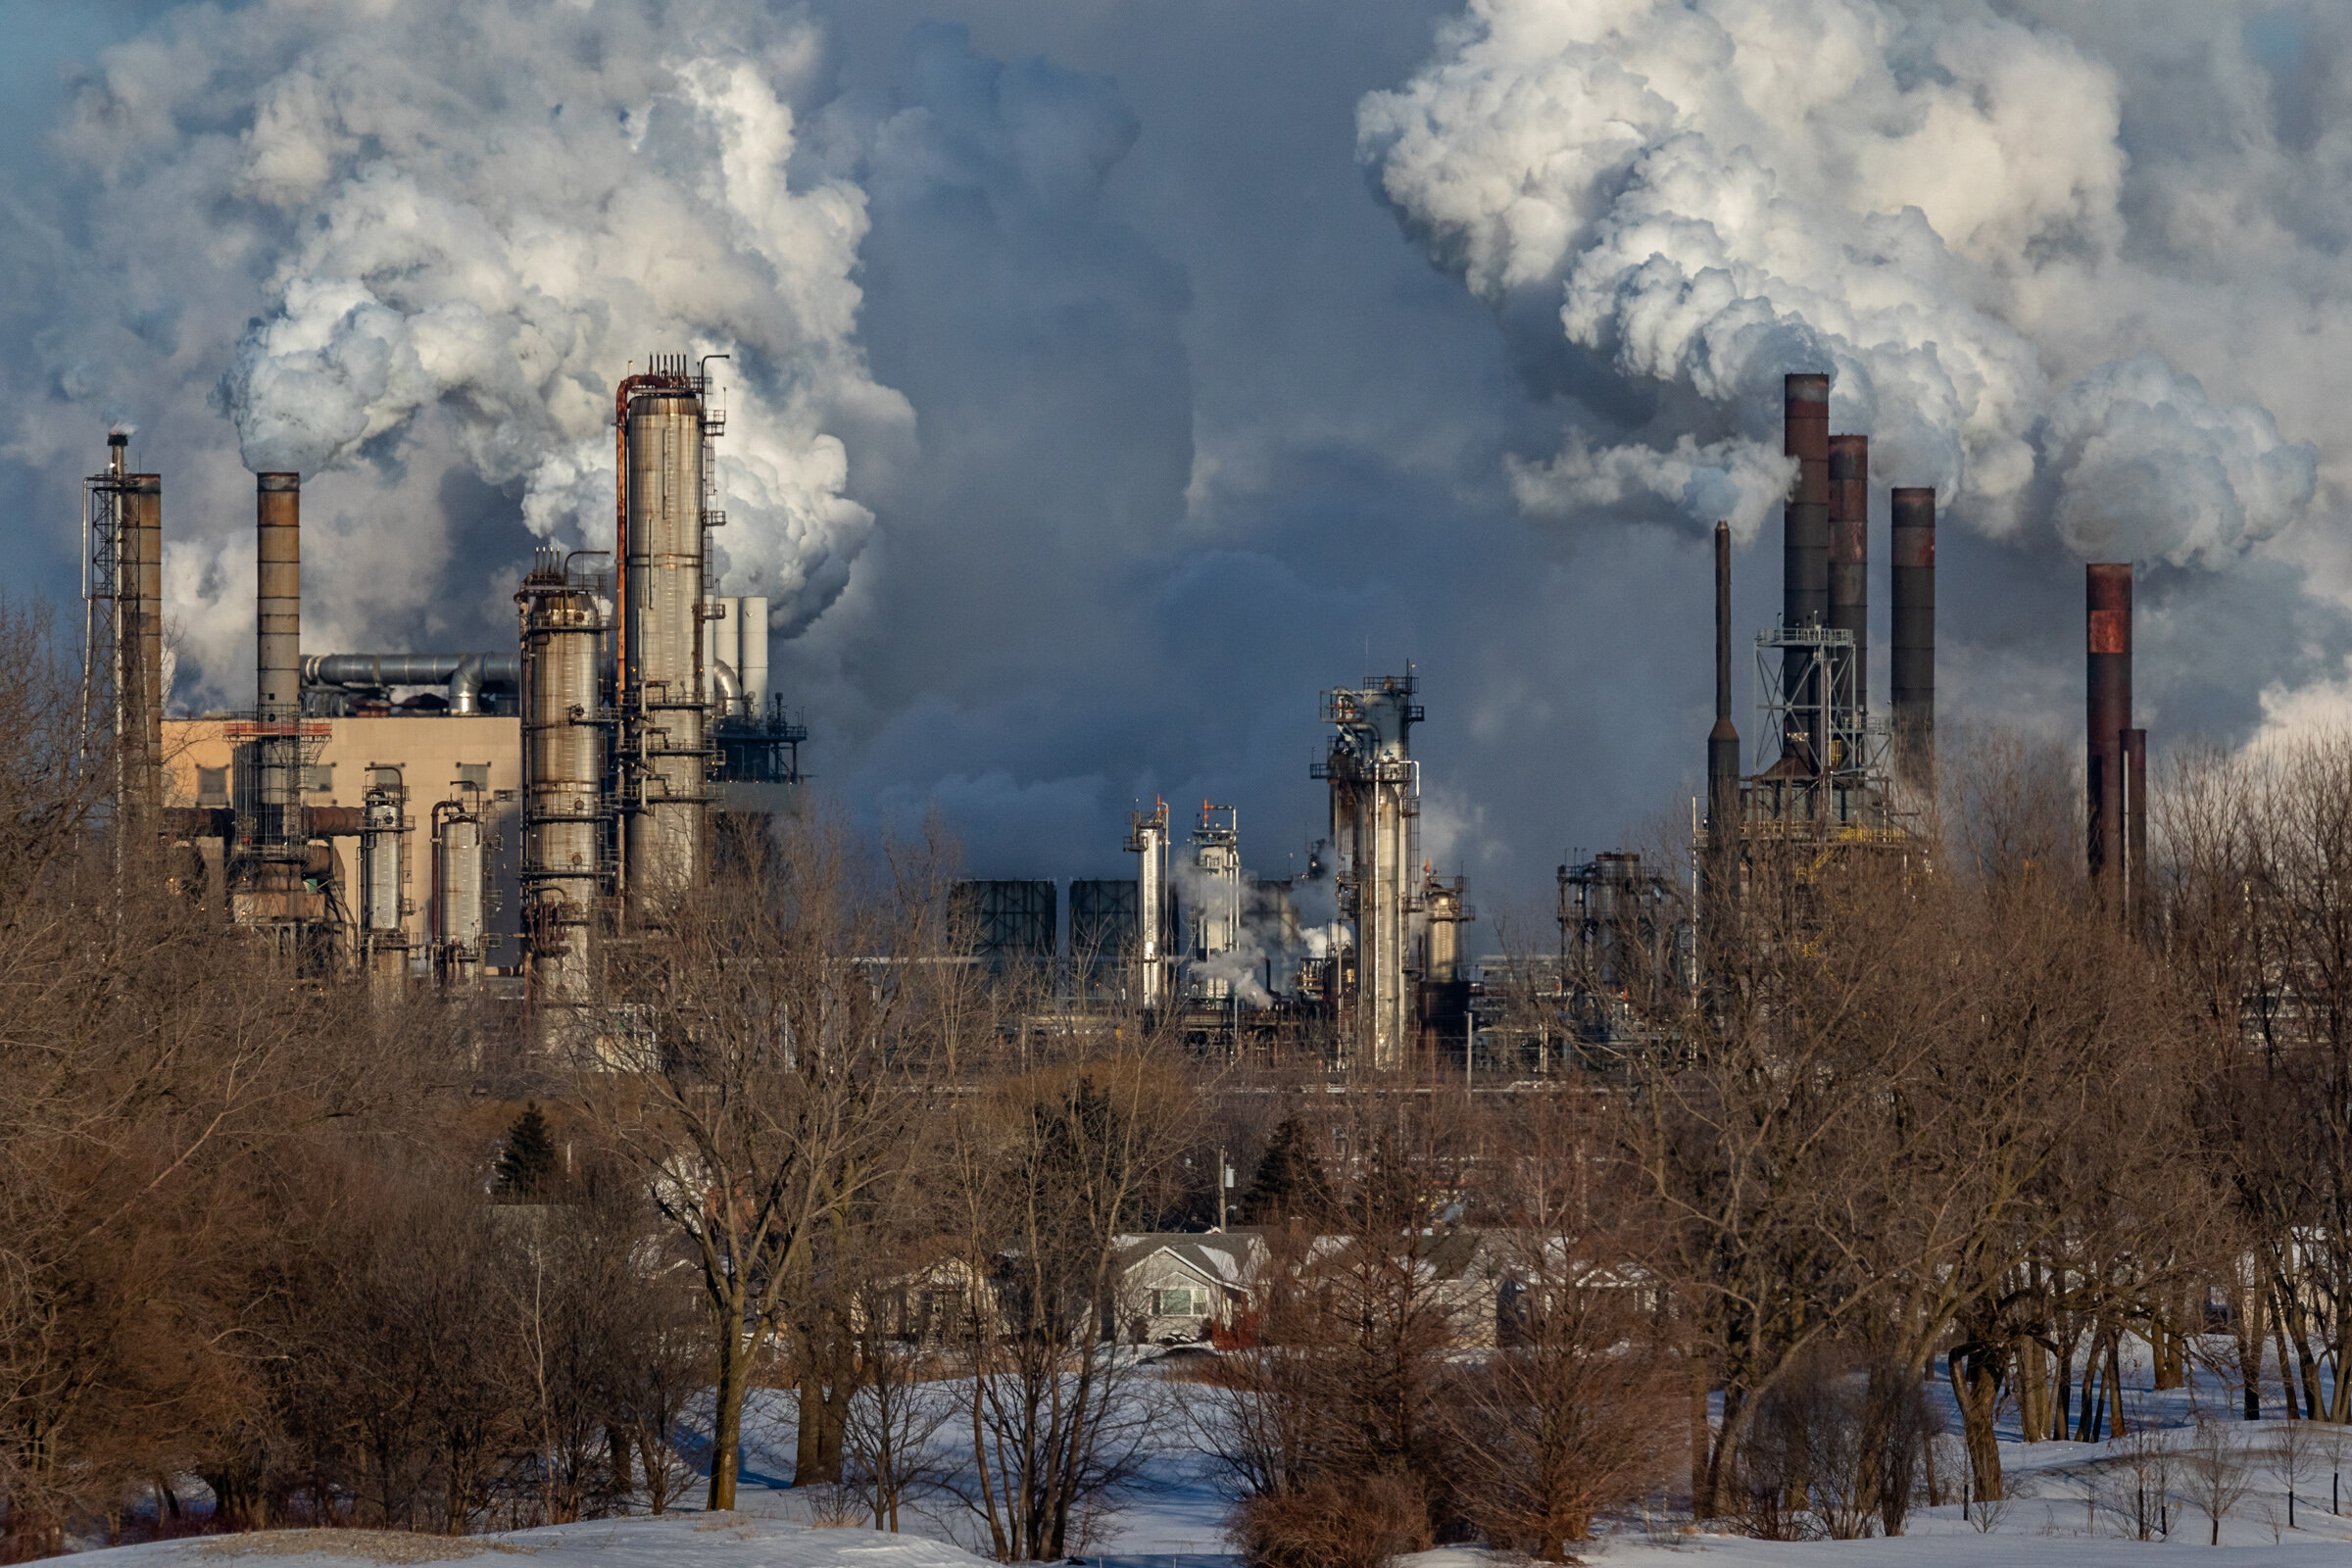 Figure 9. Whiting Refinery with Houses in Hammond, January 2019. Photograph by Matthew Kaplan.